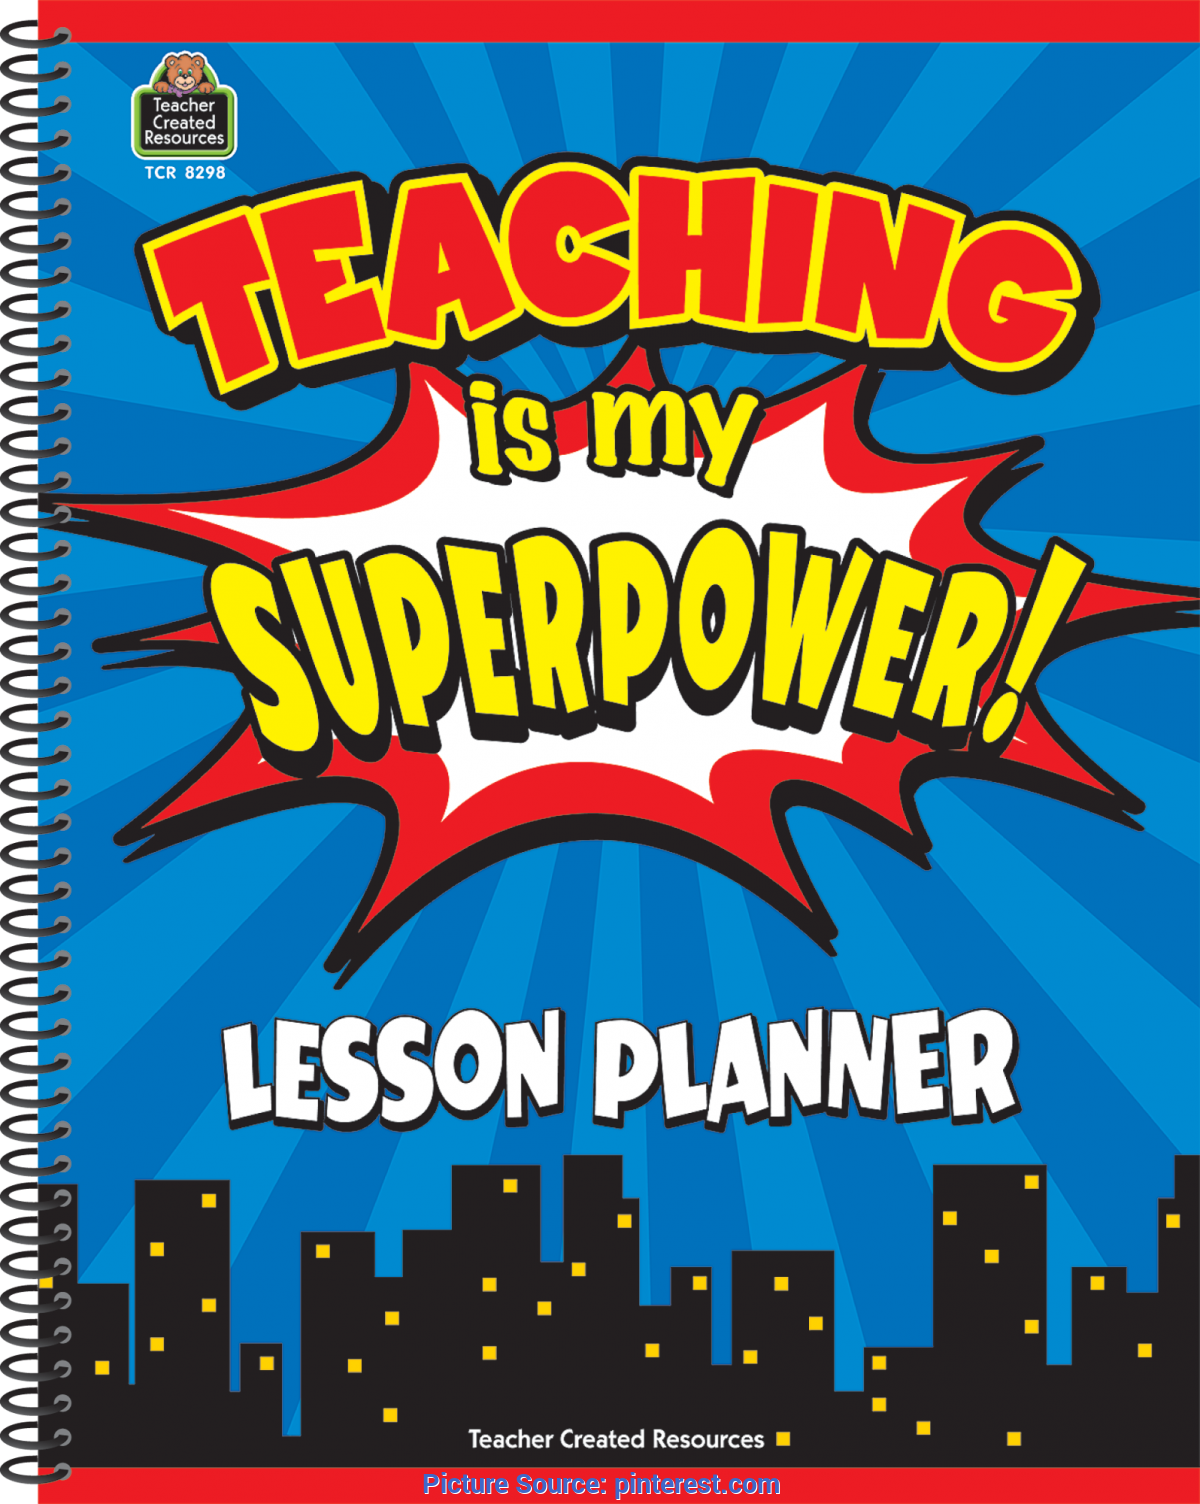 Fresh Teachers Daily Plan And Record Book Teaching Is My Superpower Lesson Planner   Substitute Teache